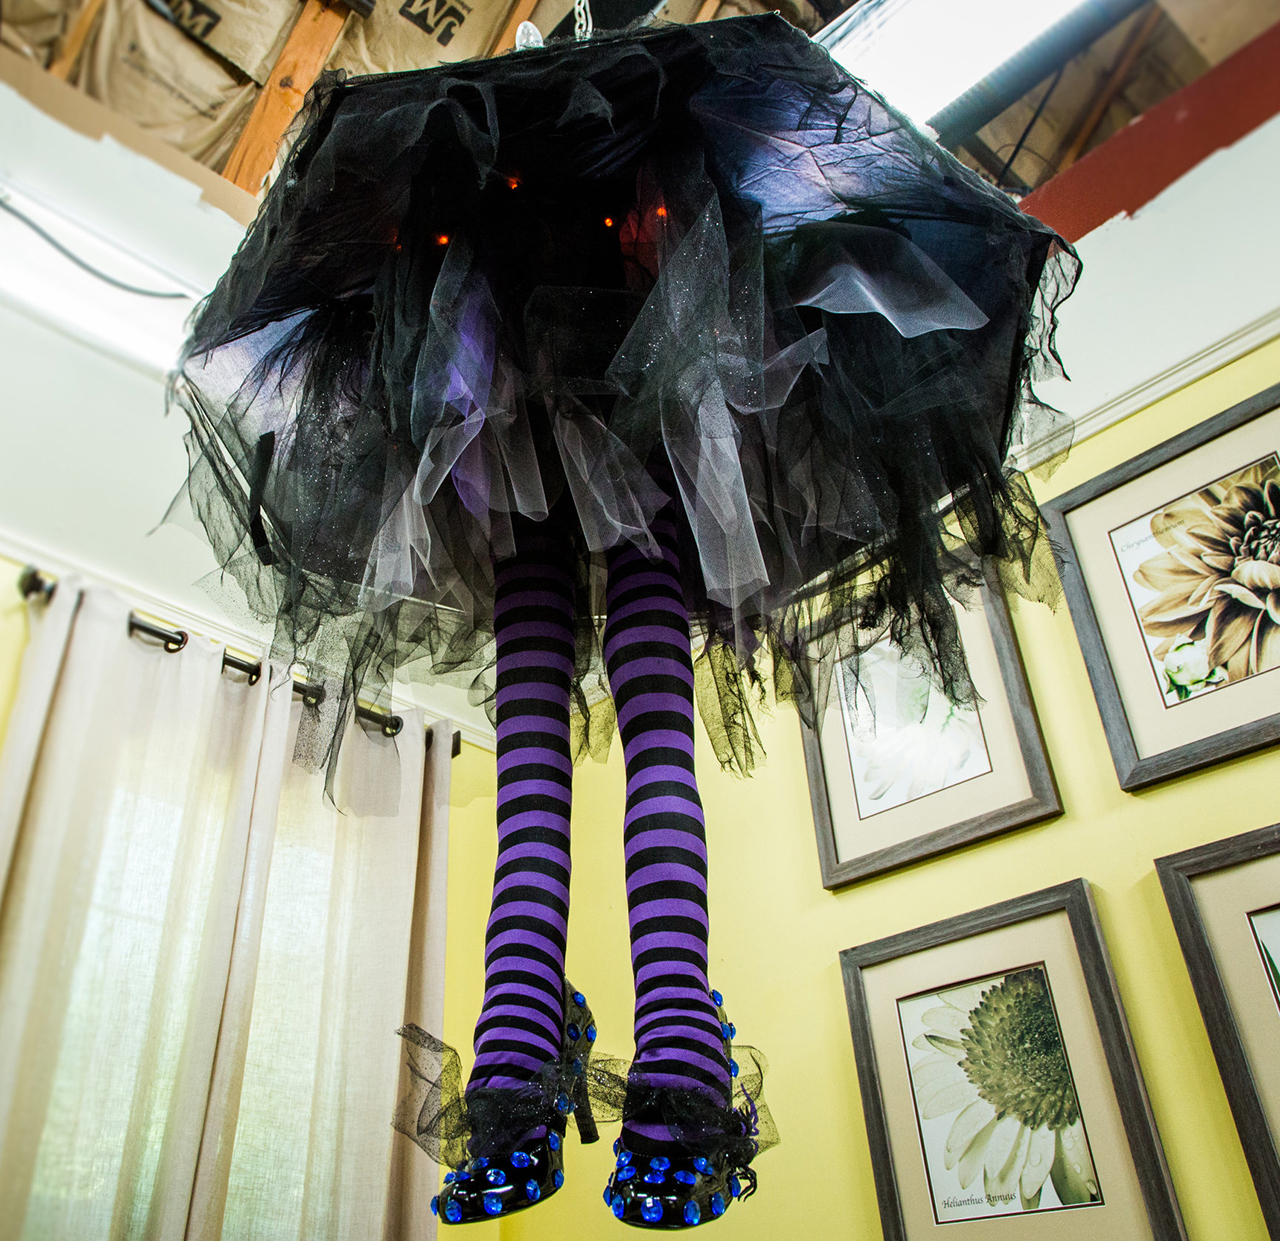 spooky witch leg chandelier shines - Halloween Decorations Witches